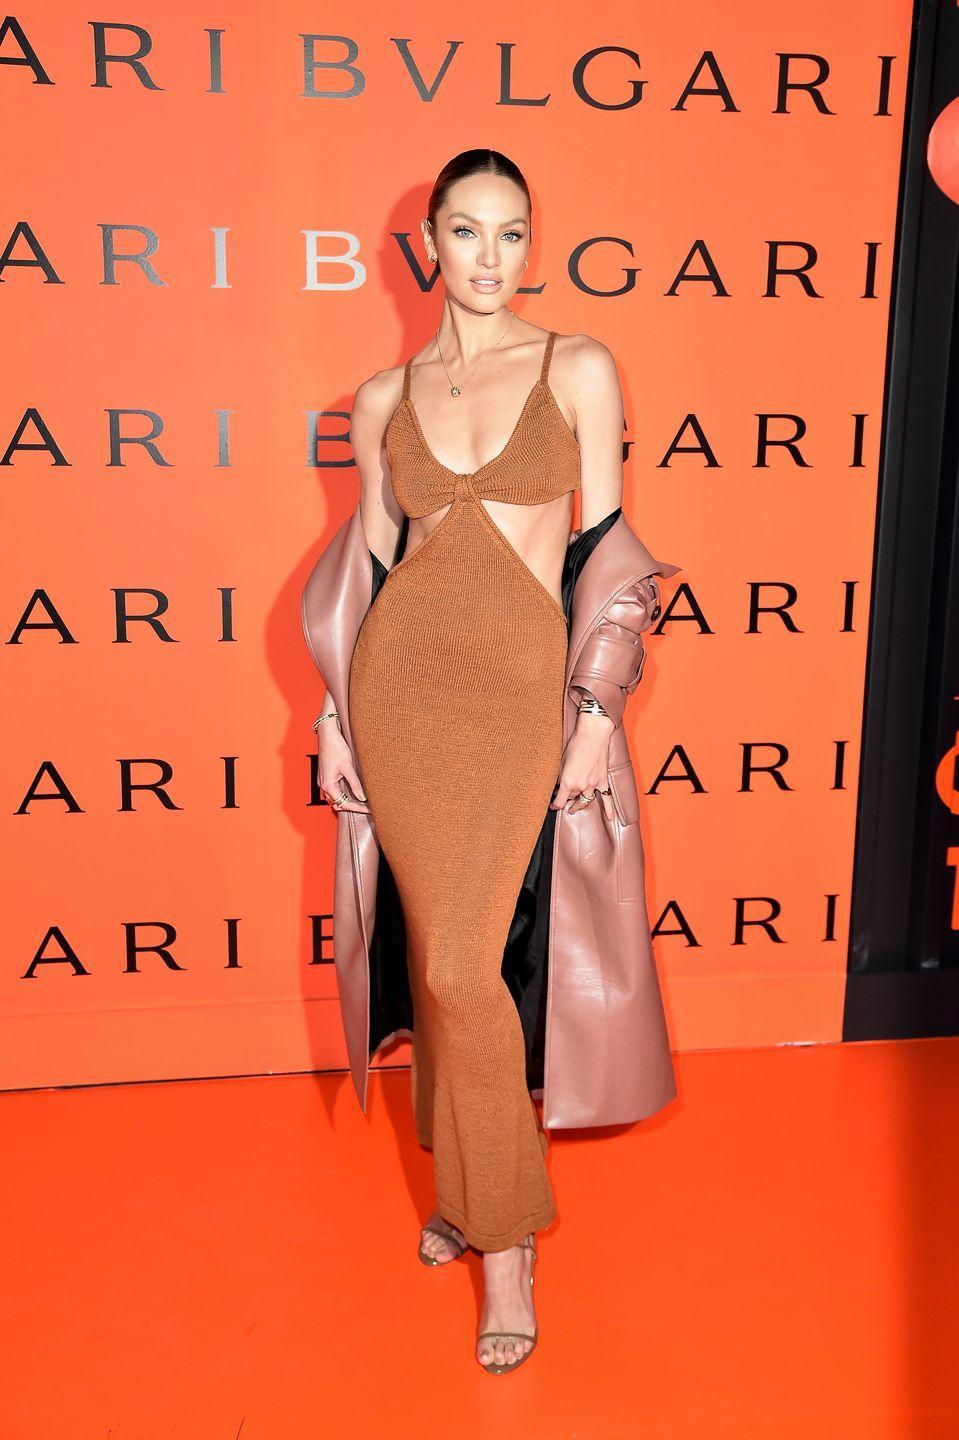 """<p>What a difference a year makes. From haute couture elements infiltrating our day-to-day garbs in 2019 to leisurewear becoming de rigueur in 2020, fashion experienced a drastic shift. Still, there was one item that stood out from the sea of sweats, and that was <a href=""""https://www.harpersbazaar.com/fashion/trends/a32702906/dress-of-summer-2020/"""" rel=""""nofollow noopener"""" target=""""_blank"""" data-ylk=""""slk:Cult Gaia's Serita dress"""" class=""""link rapid-noclick-resp"""">Cult Gaia's Serita dress</a>. Made of stretch knit and featuring sleek cutouts, the frock was a favorite of the stylish set, including Candice Swanepoel, who wore it on the red carpet, and Hailey Bieber, who donned the dress on an island vacation. </p>"""